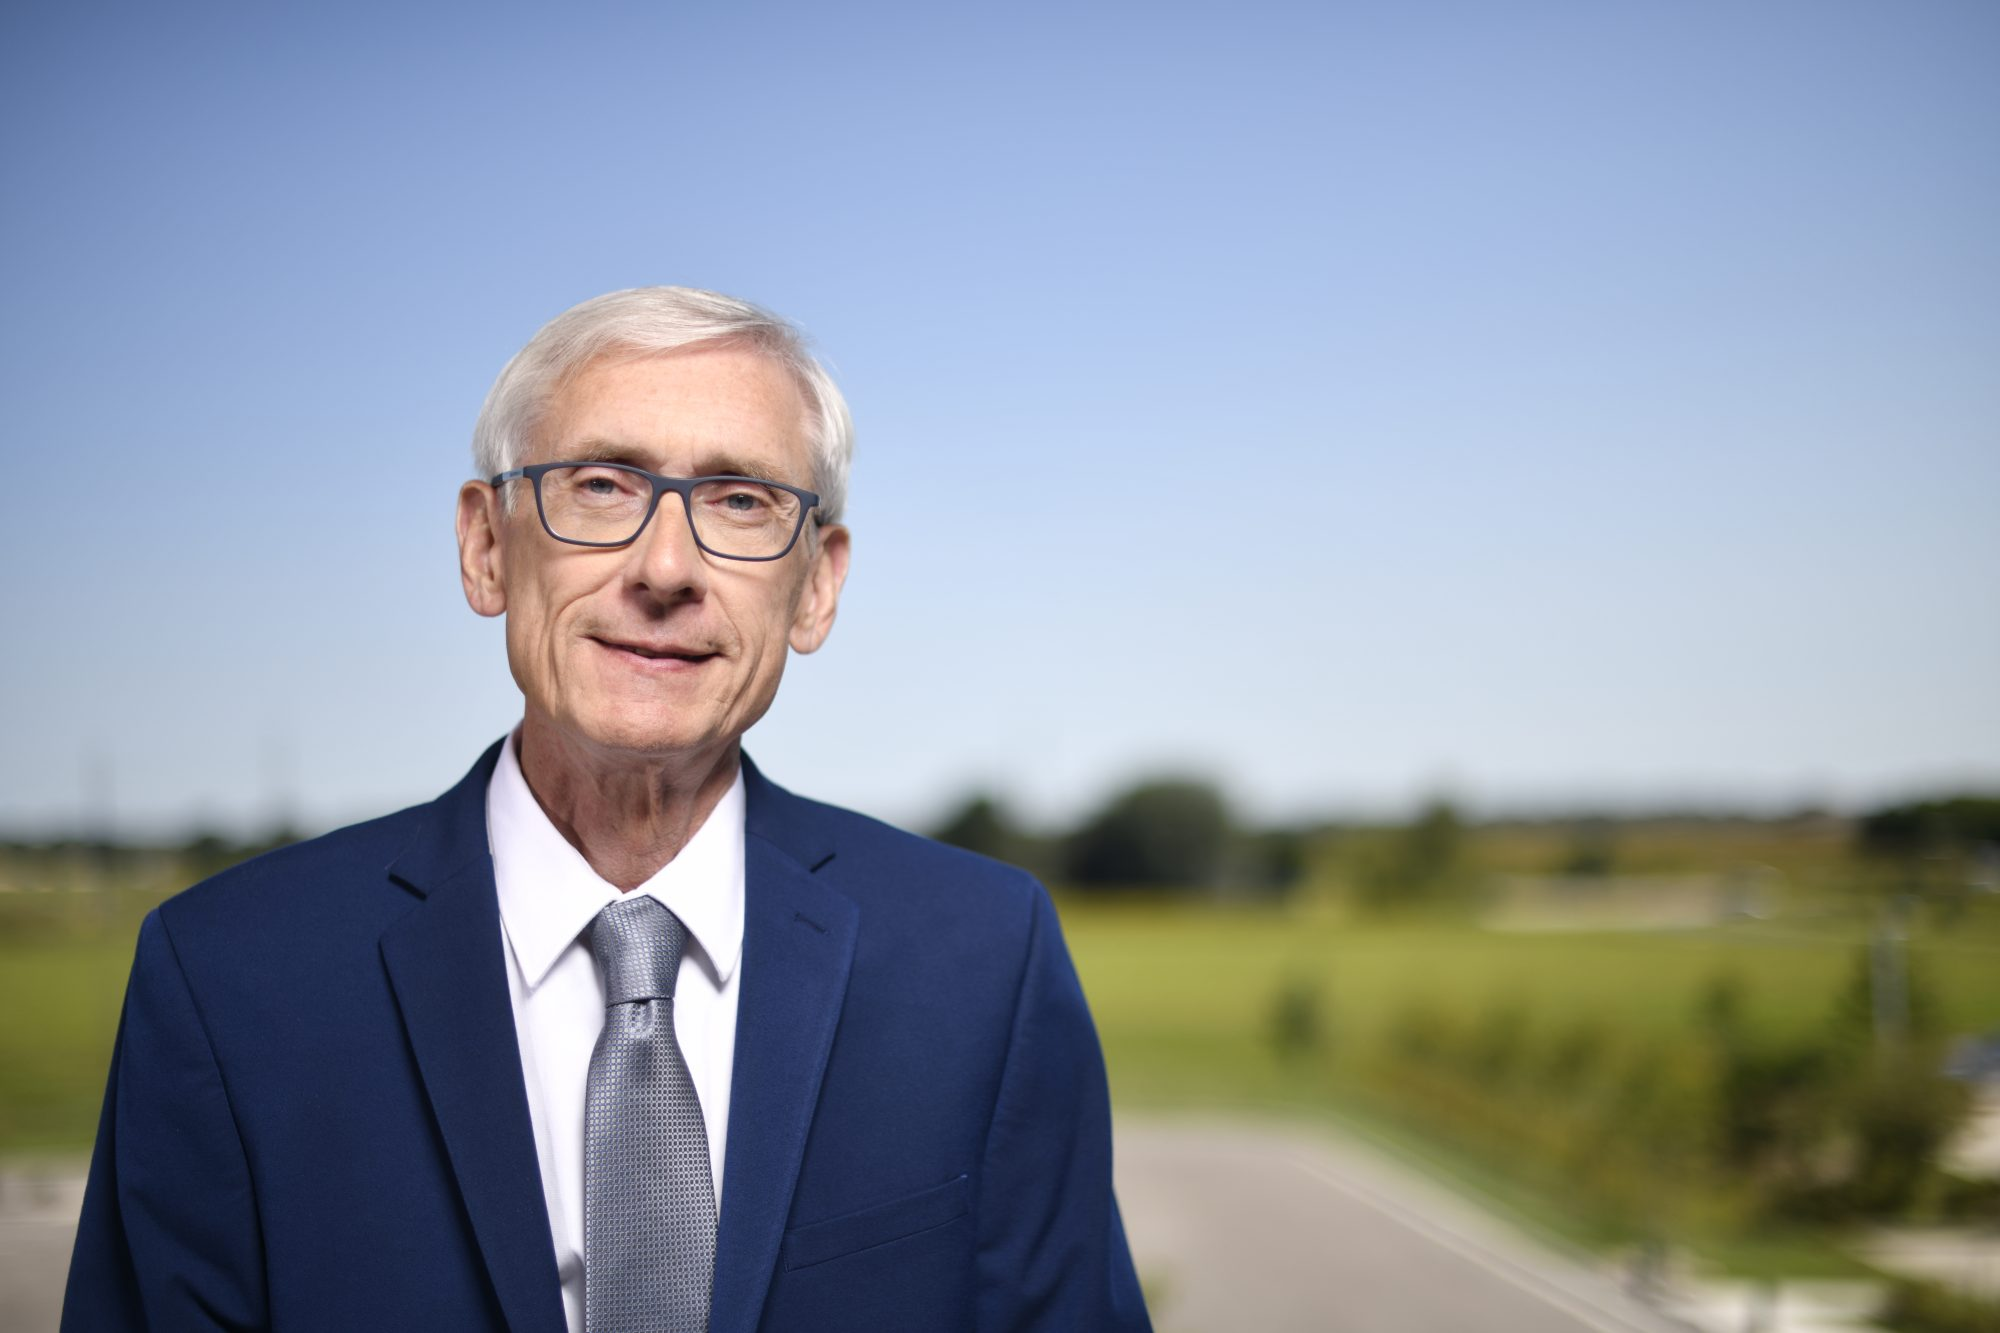 Gov. Evers: We Must Confront Society's Comfort with Racism